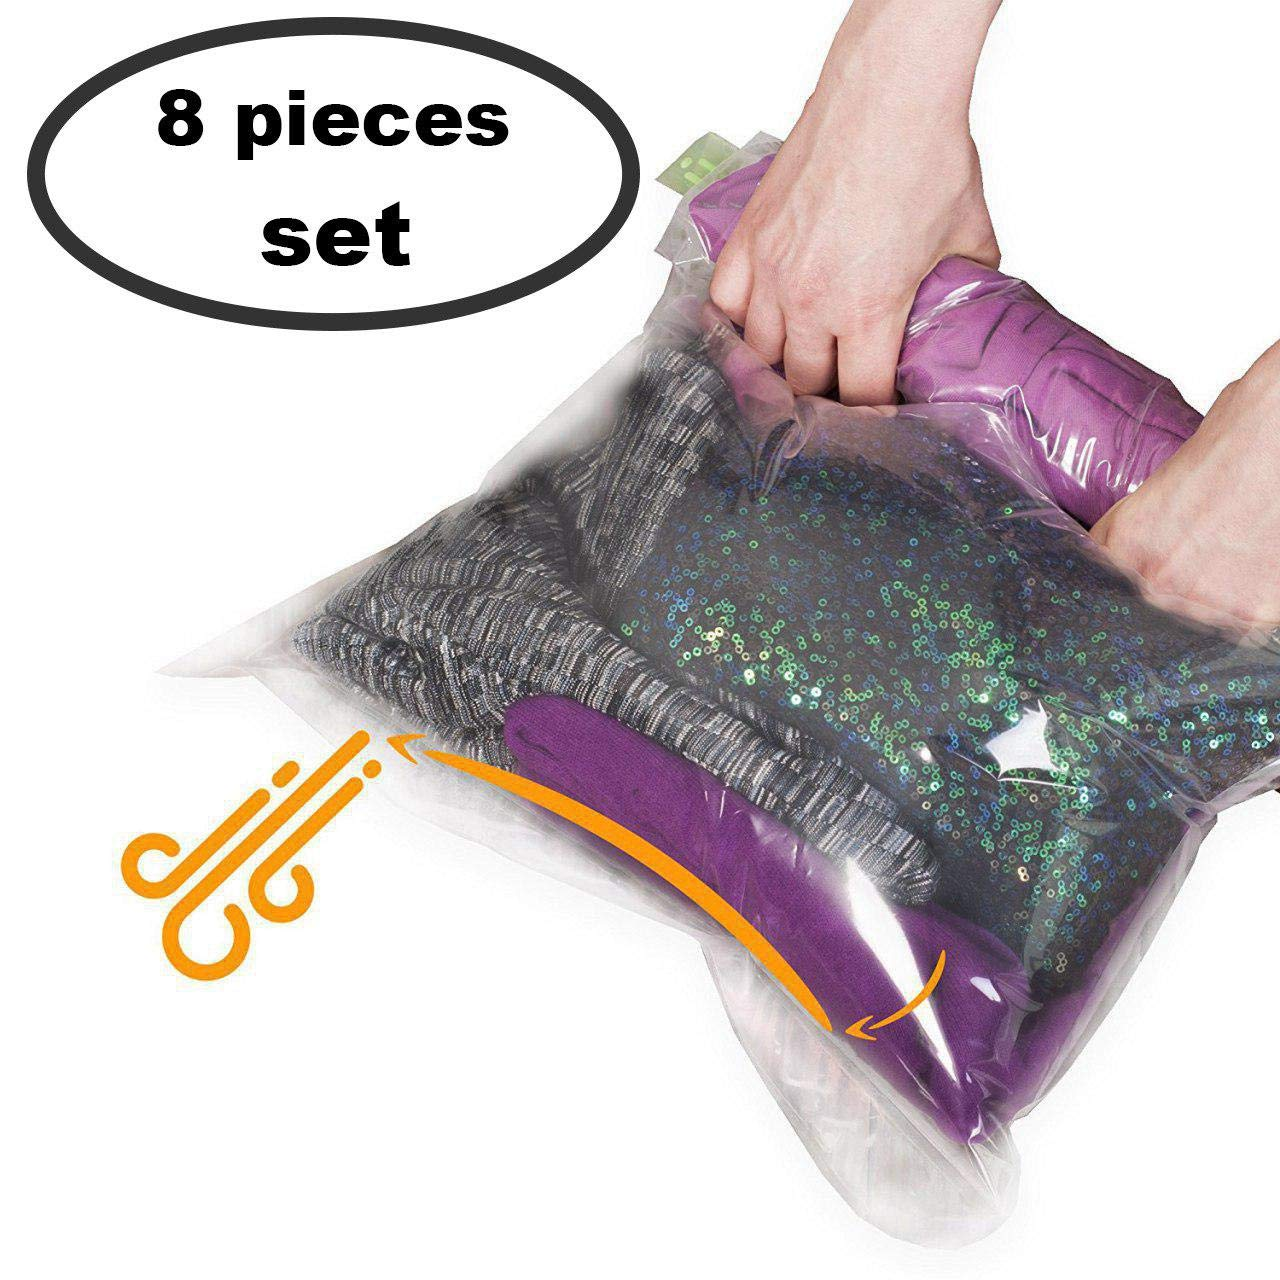 8 Travel Space Saver Bags - No Vacuum or Pump Needed - for Clothes - Reusable - Luggage Compression - Set of 4 L and 4 M Sacks - Transparent